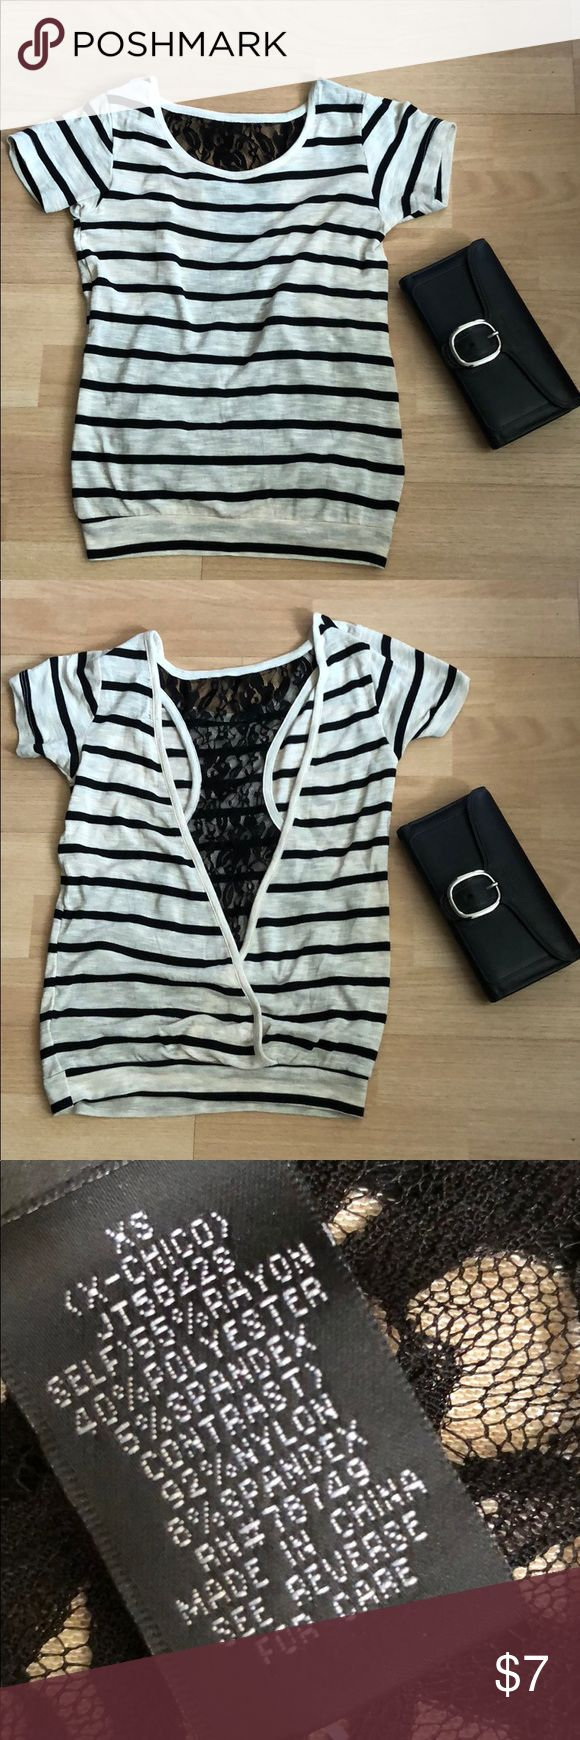 Striped Top Beige and navy striped top with black lace racer back Wet Seal Tops Tees - Short Sleeve